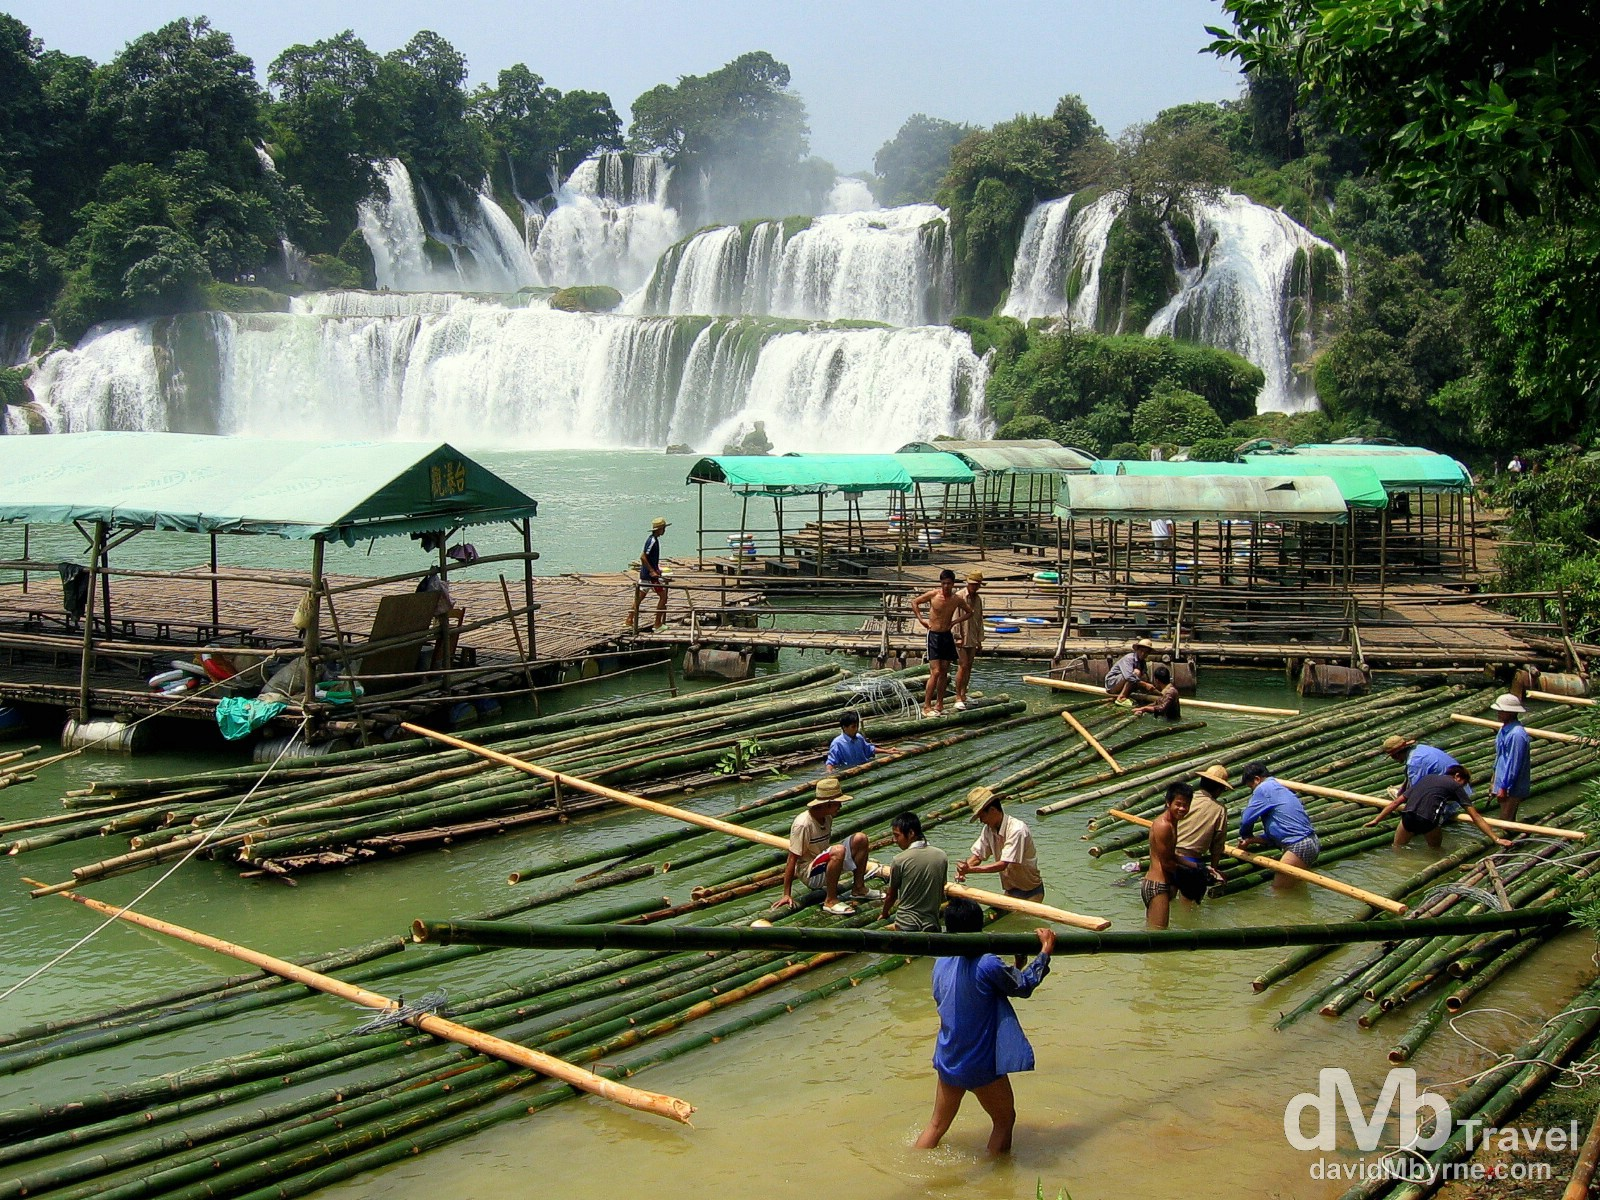 Workers at the Detian falls straddling the China-Vietnam border, near Shuolong, southwest China. September 1, 2005.